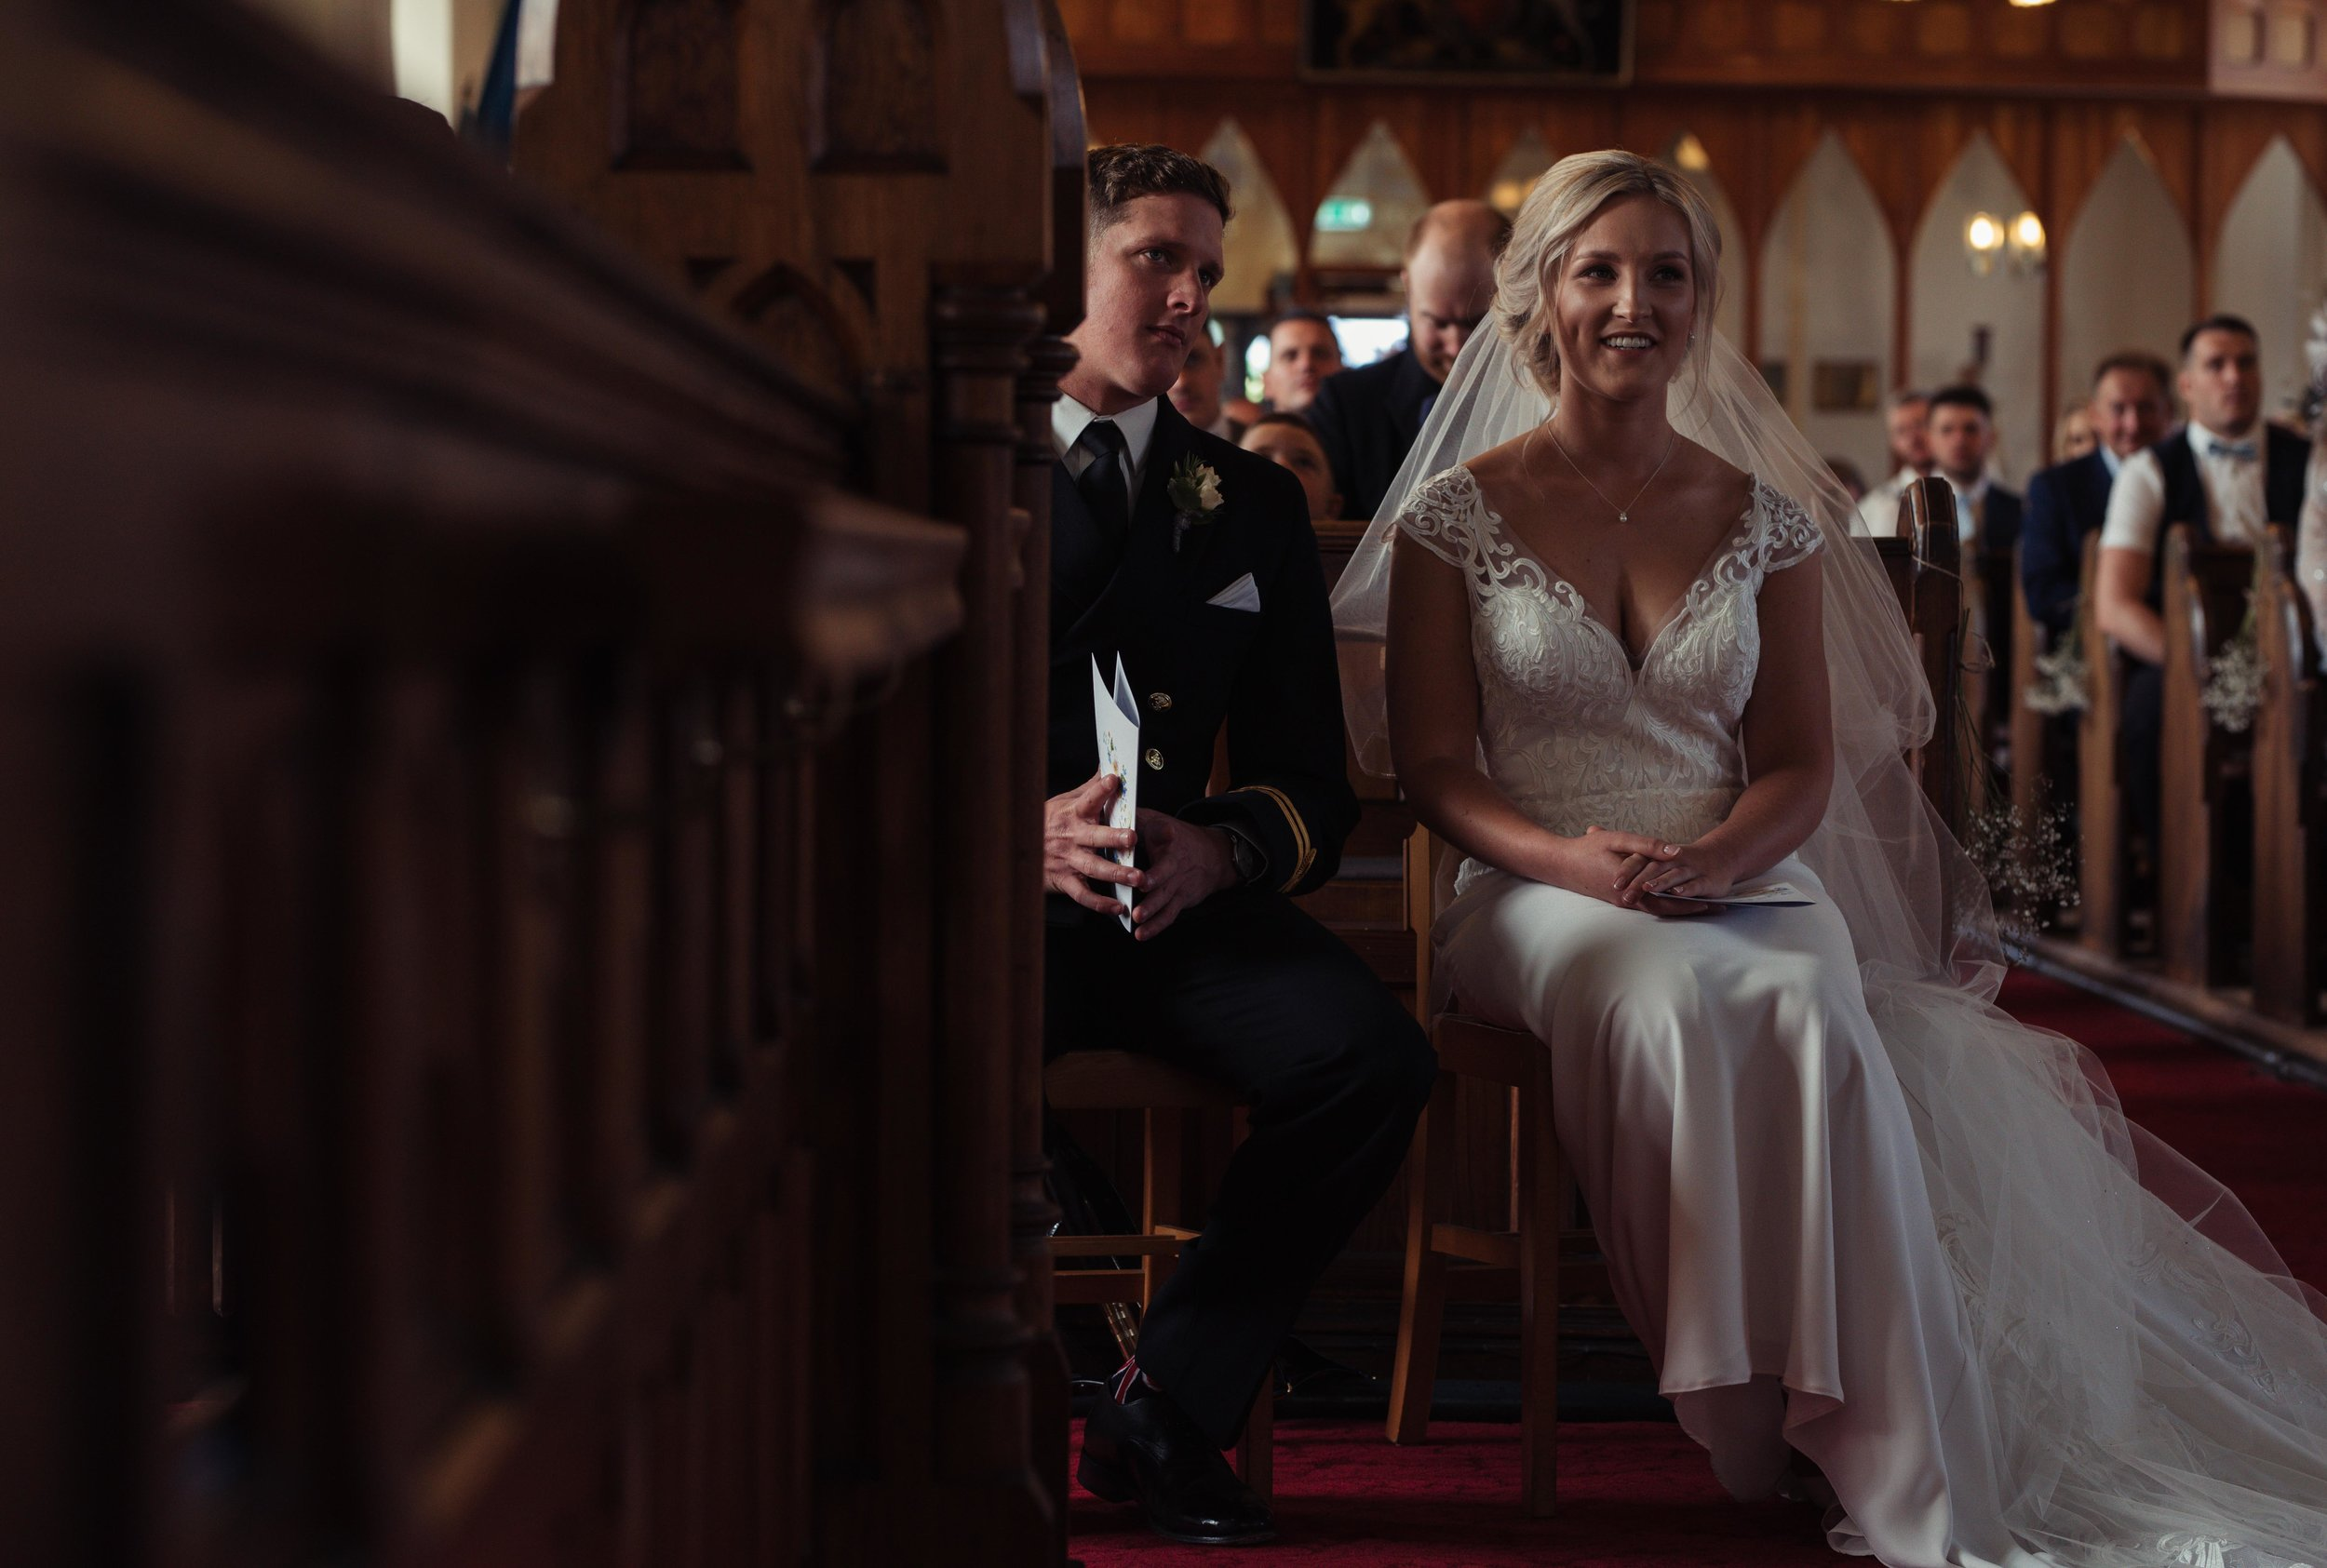 the bride and groom share a giggle over the vicars sermon during the wedding service